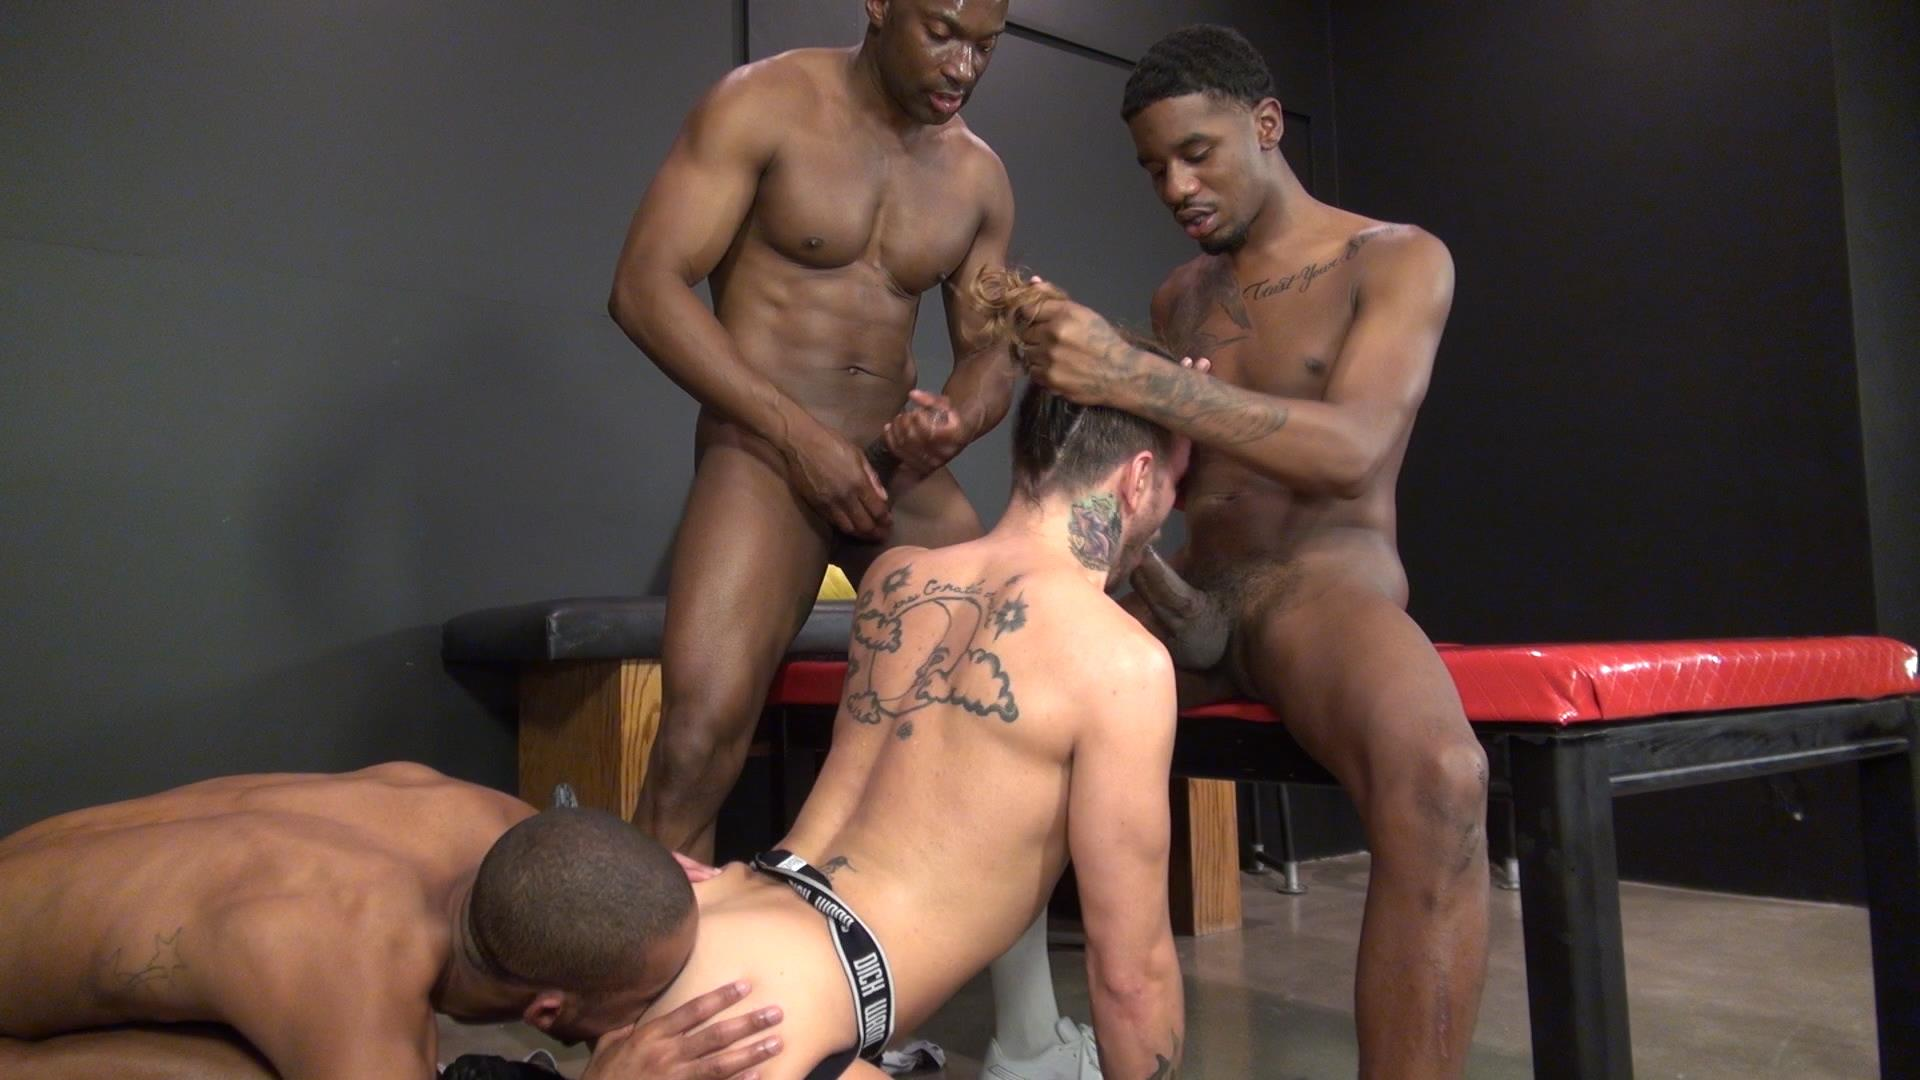 Nasty Gay Gets Interracial Cock